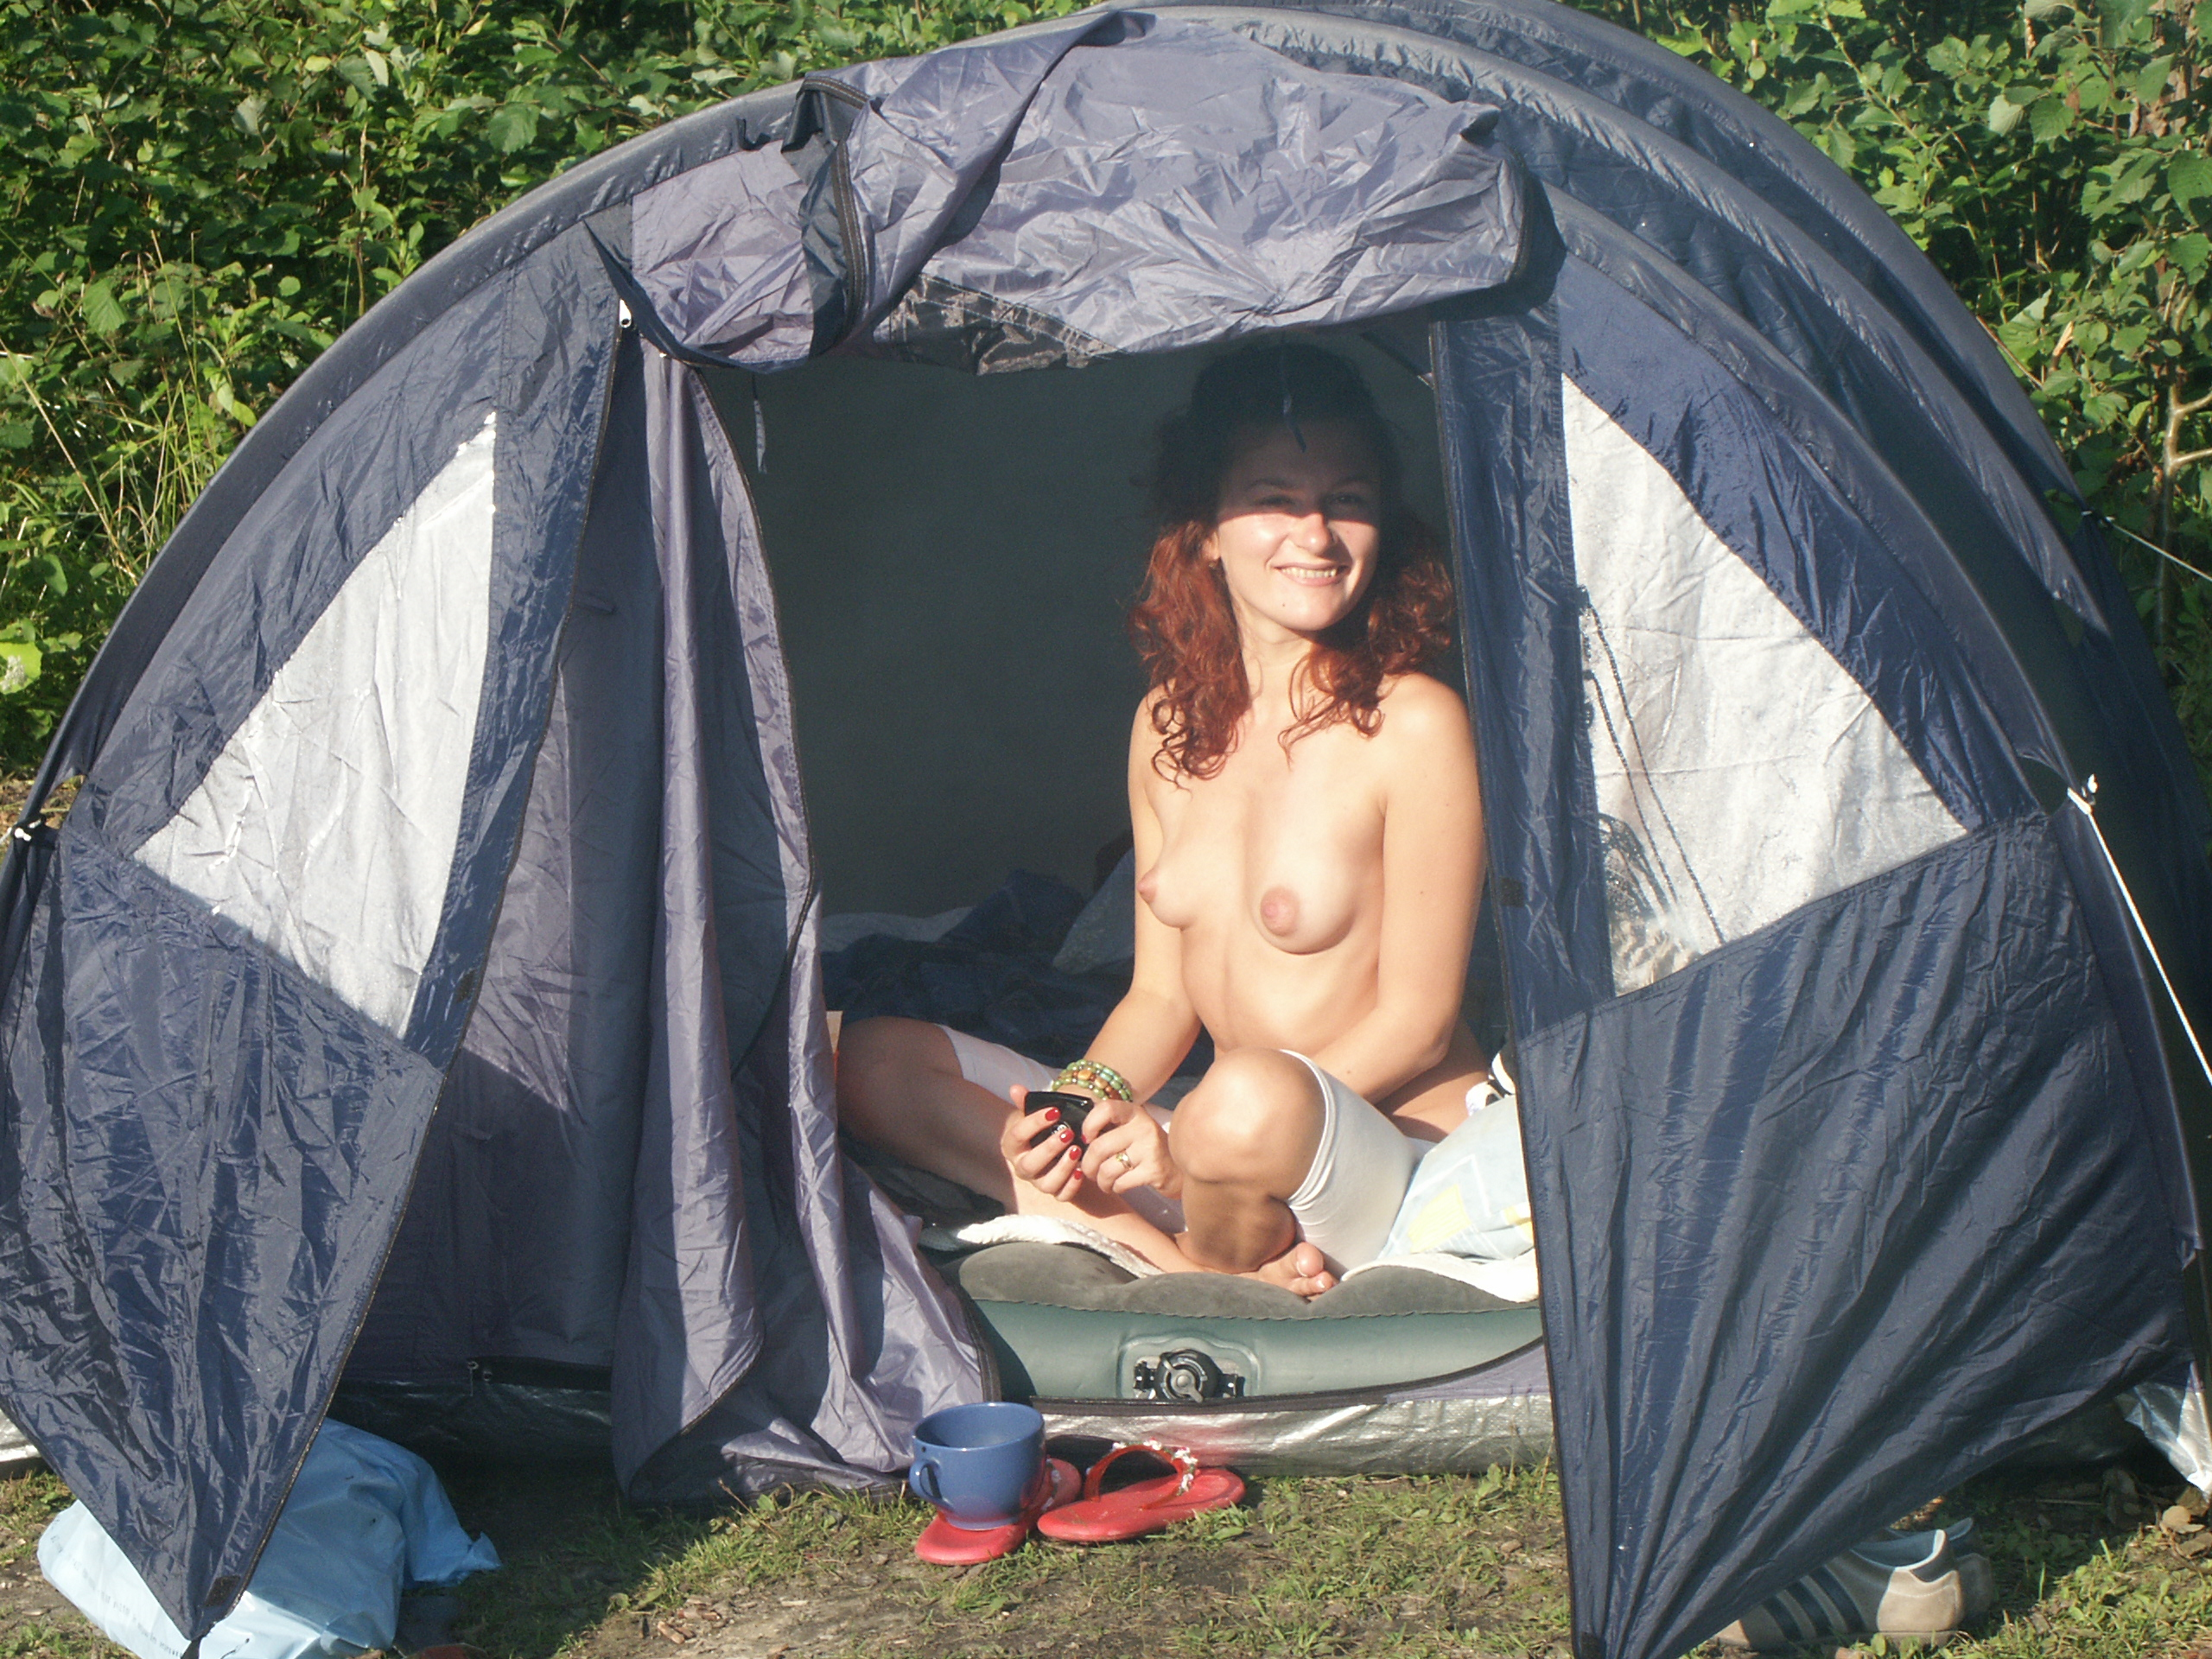 Your Naked women changing tent join told